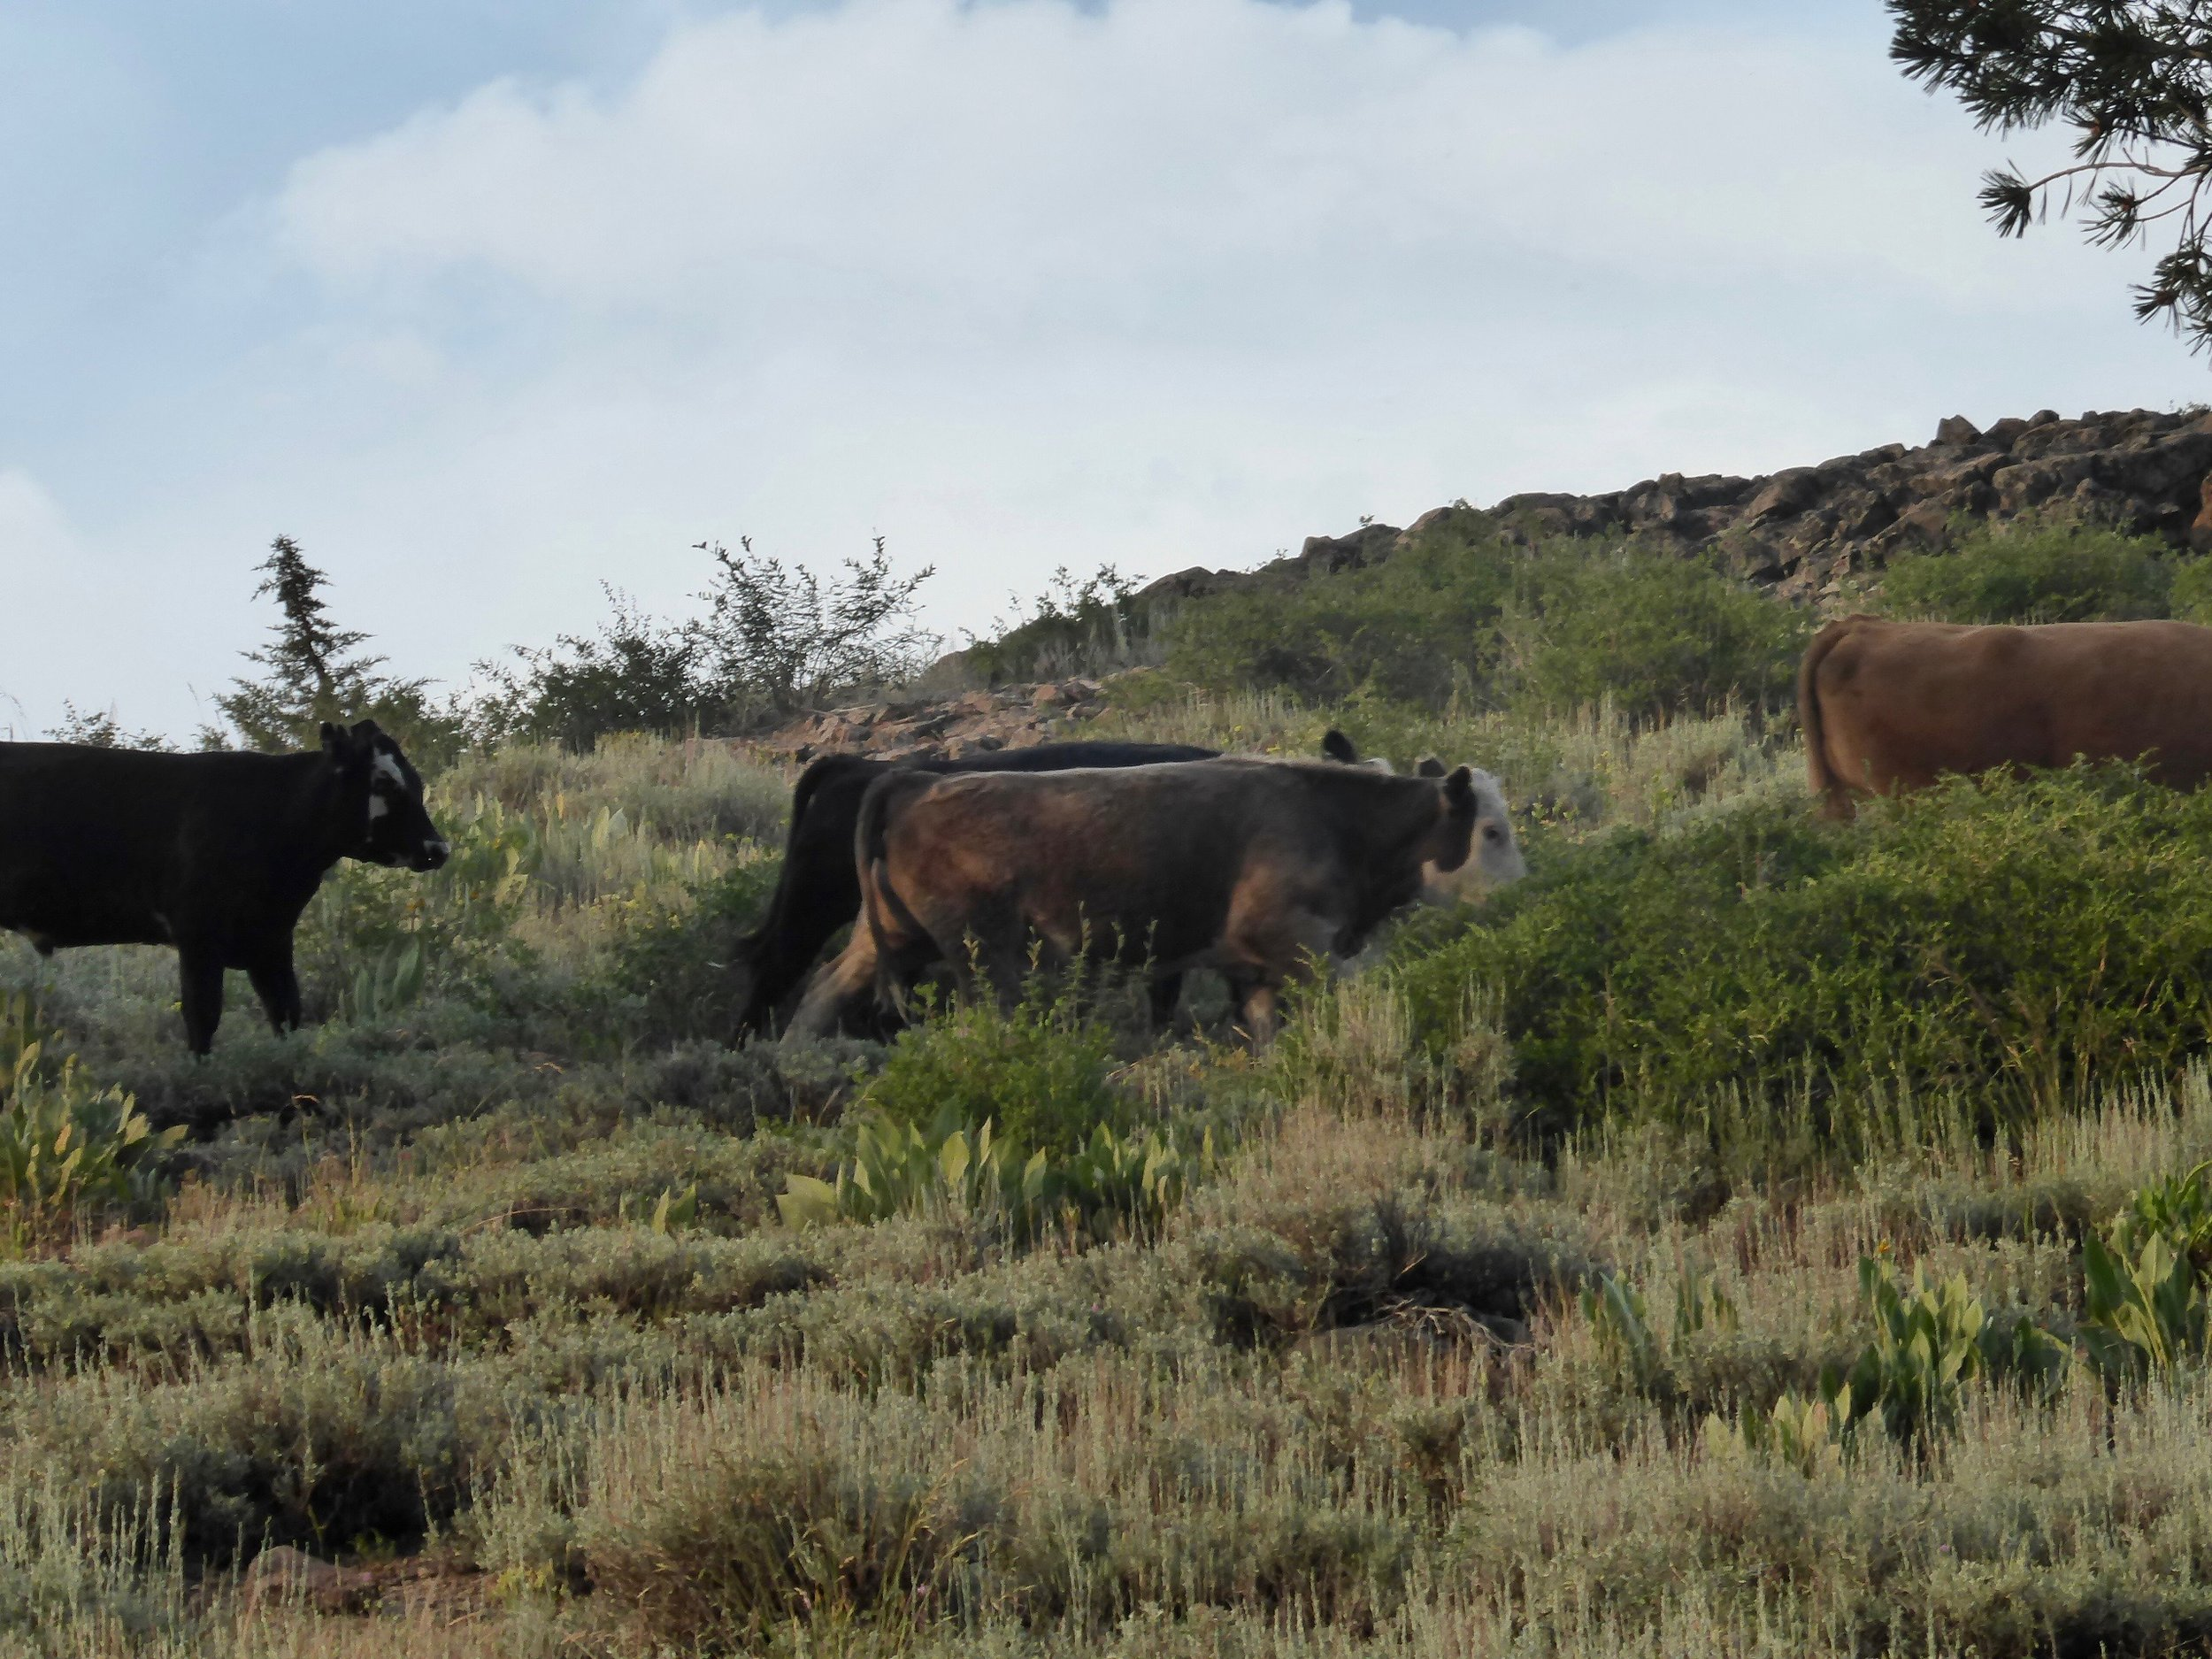 Fortunately the cows weren't interested in us.